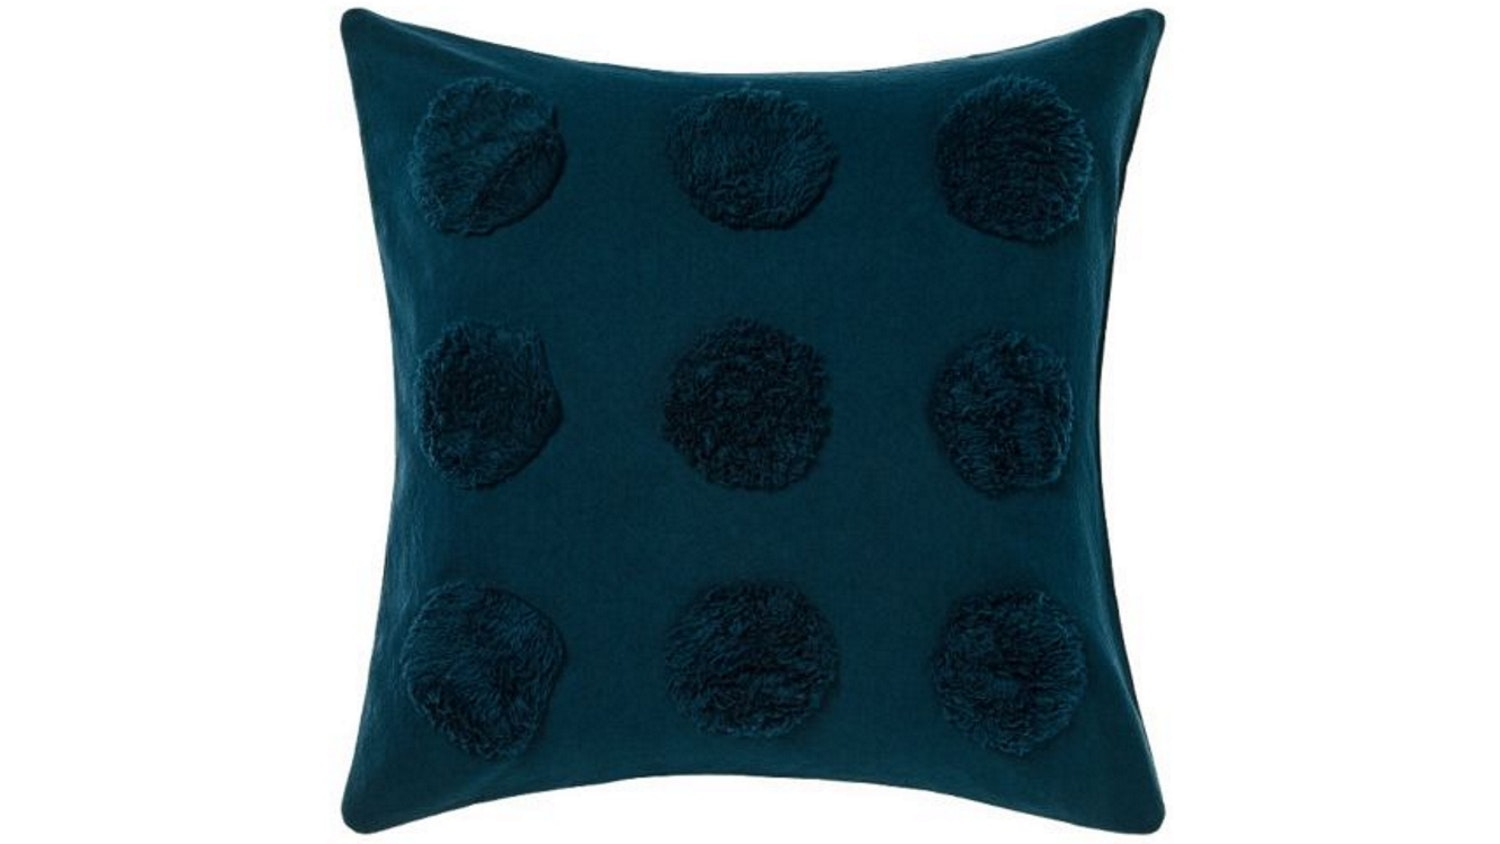 Linen House Haze Cushion - Teal